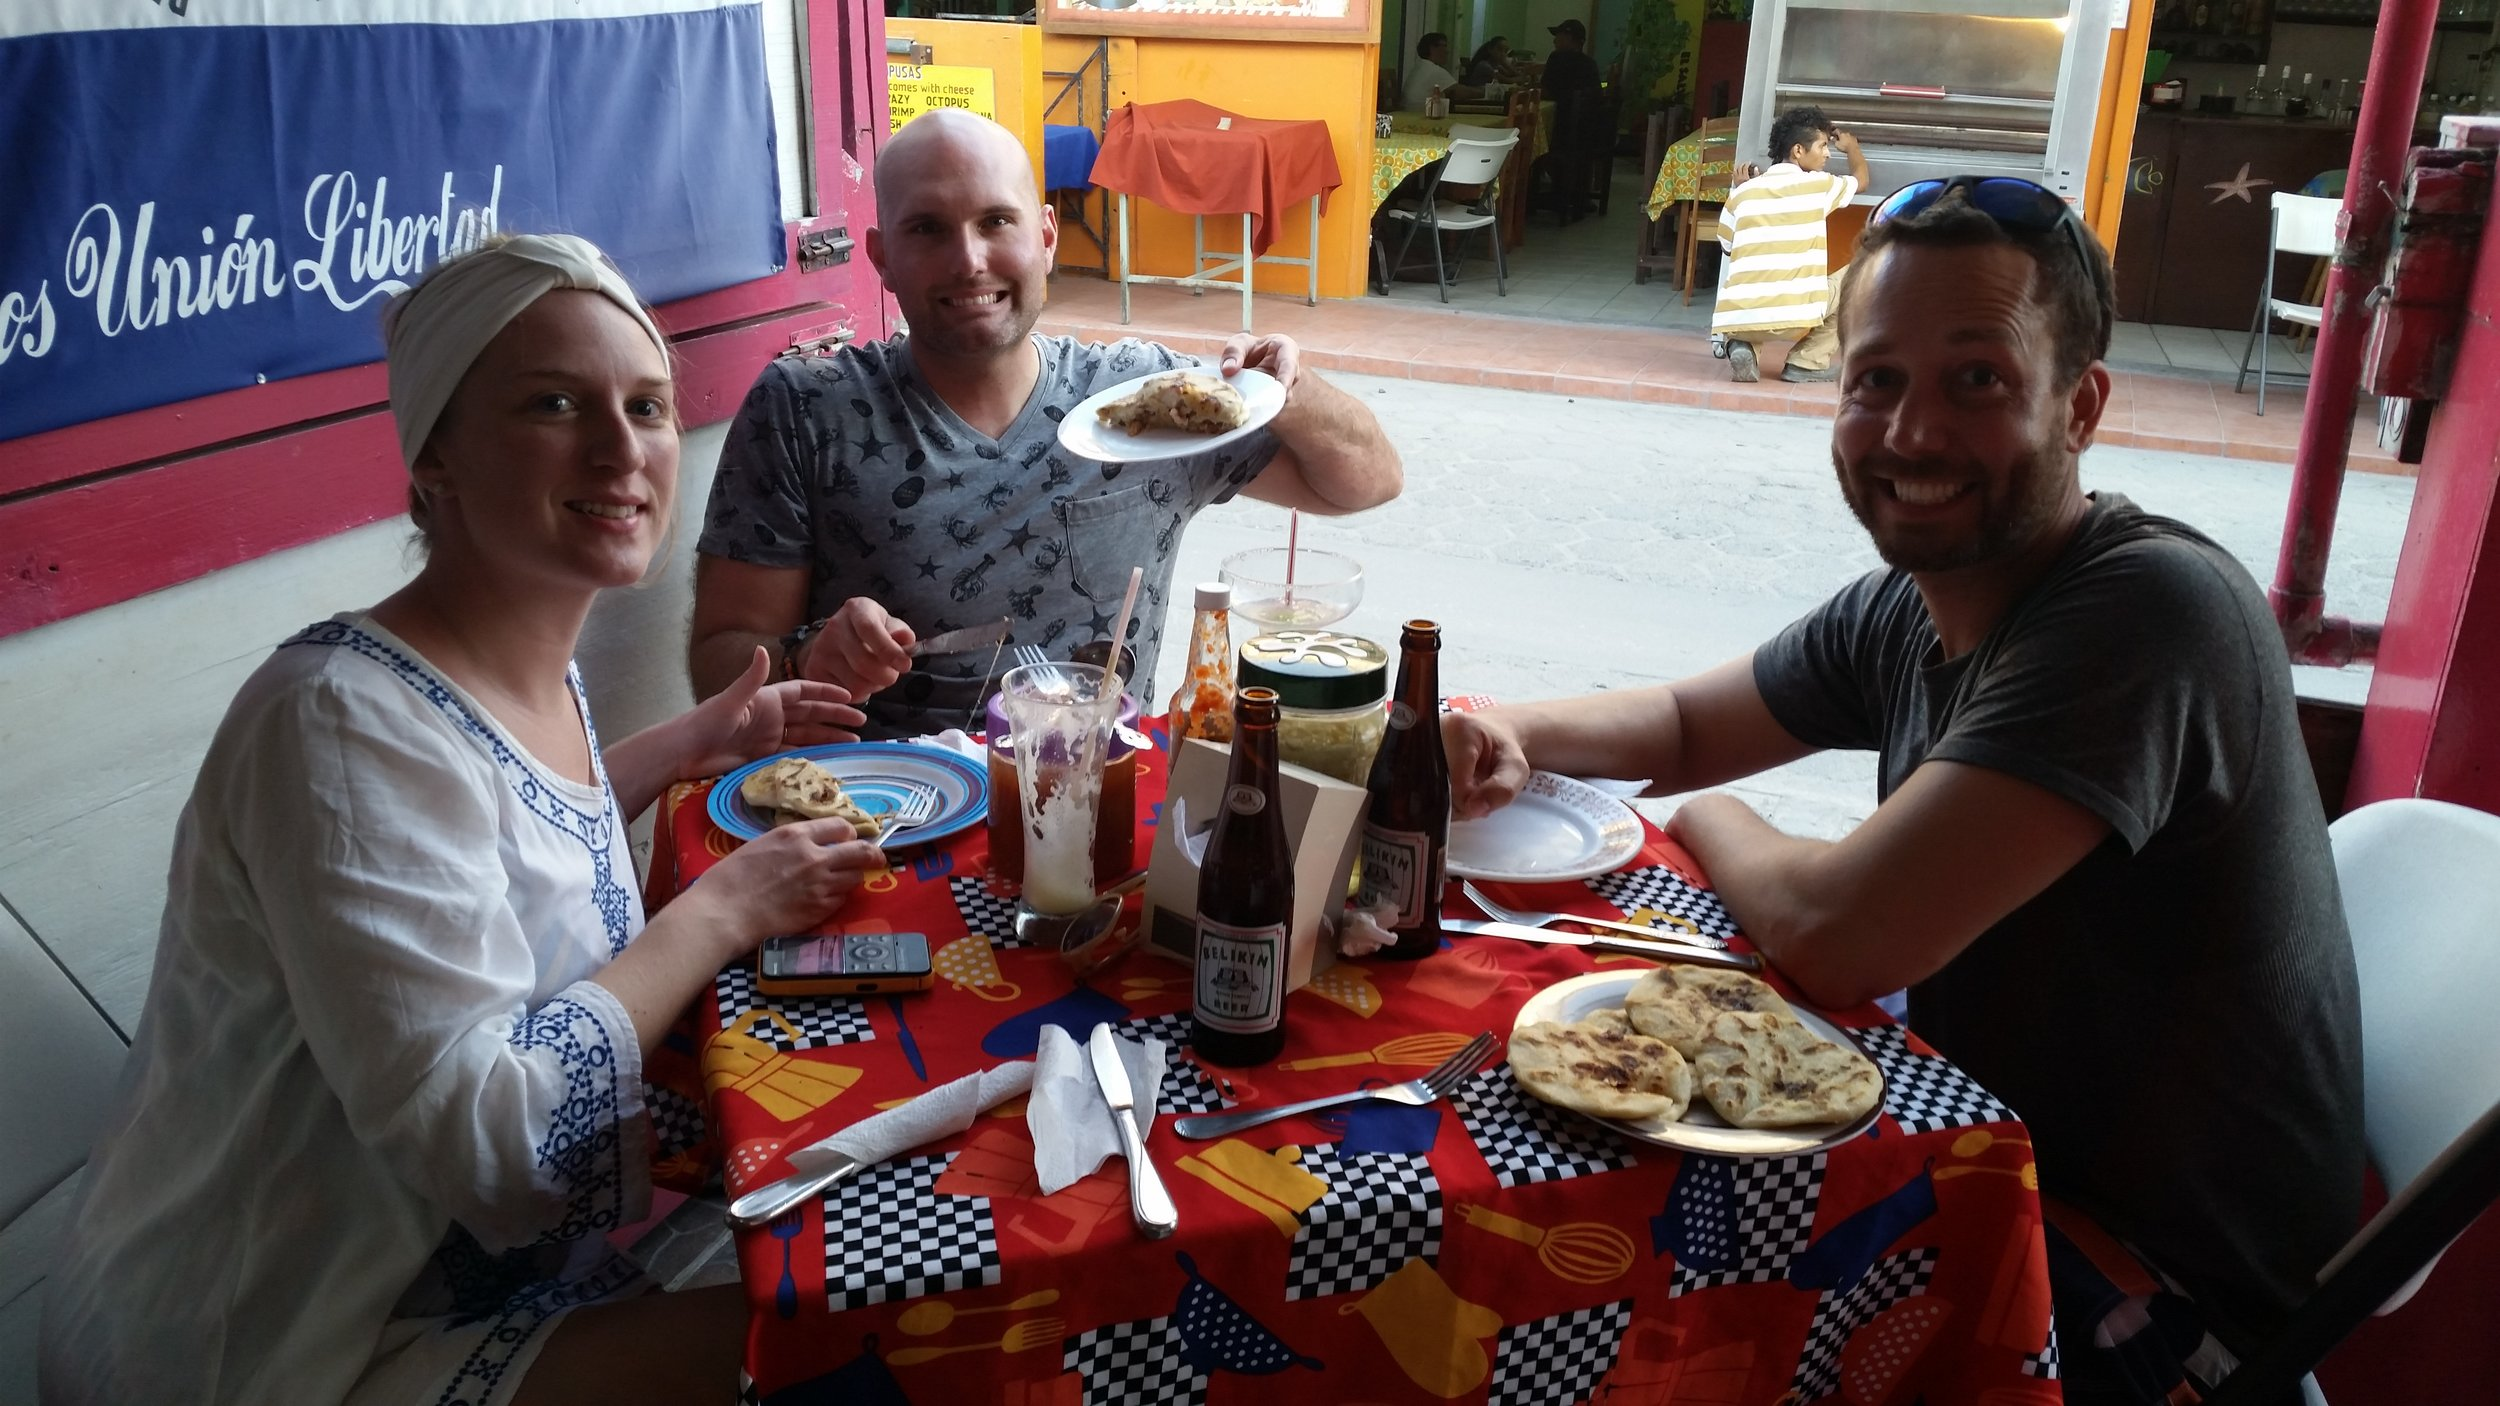 Pupusas and Beliken beer = Four happy tourists